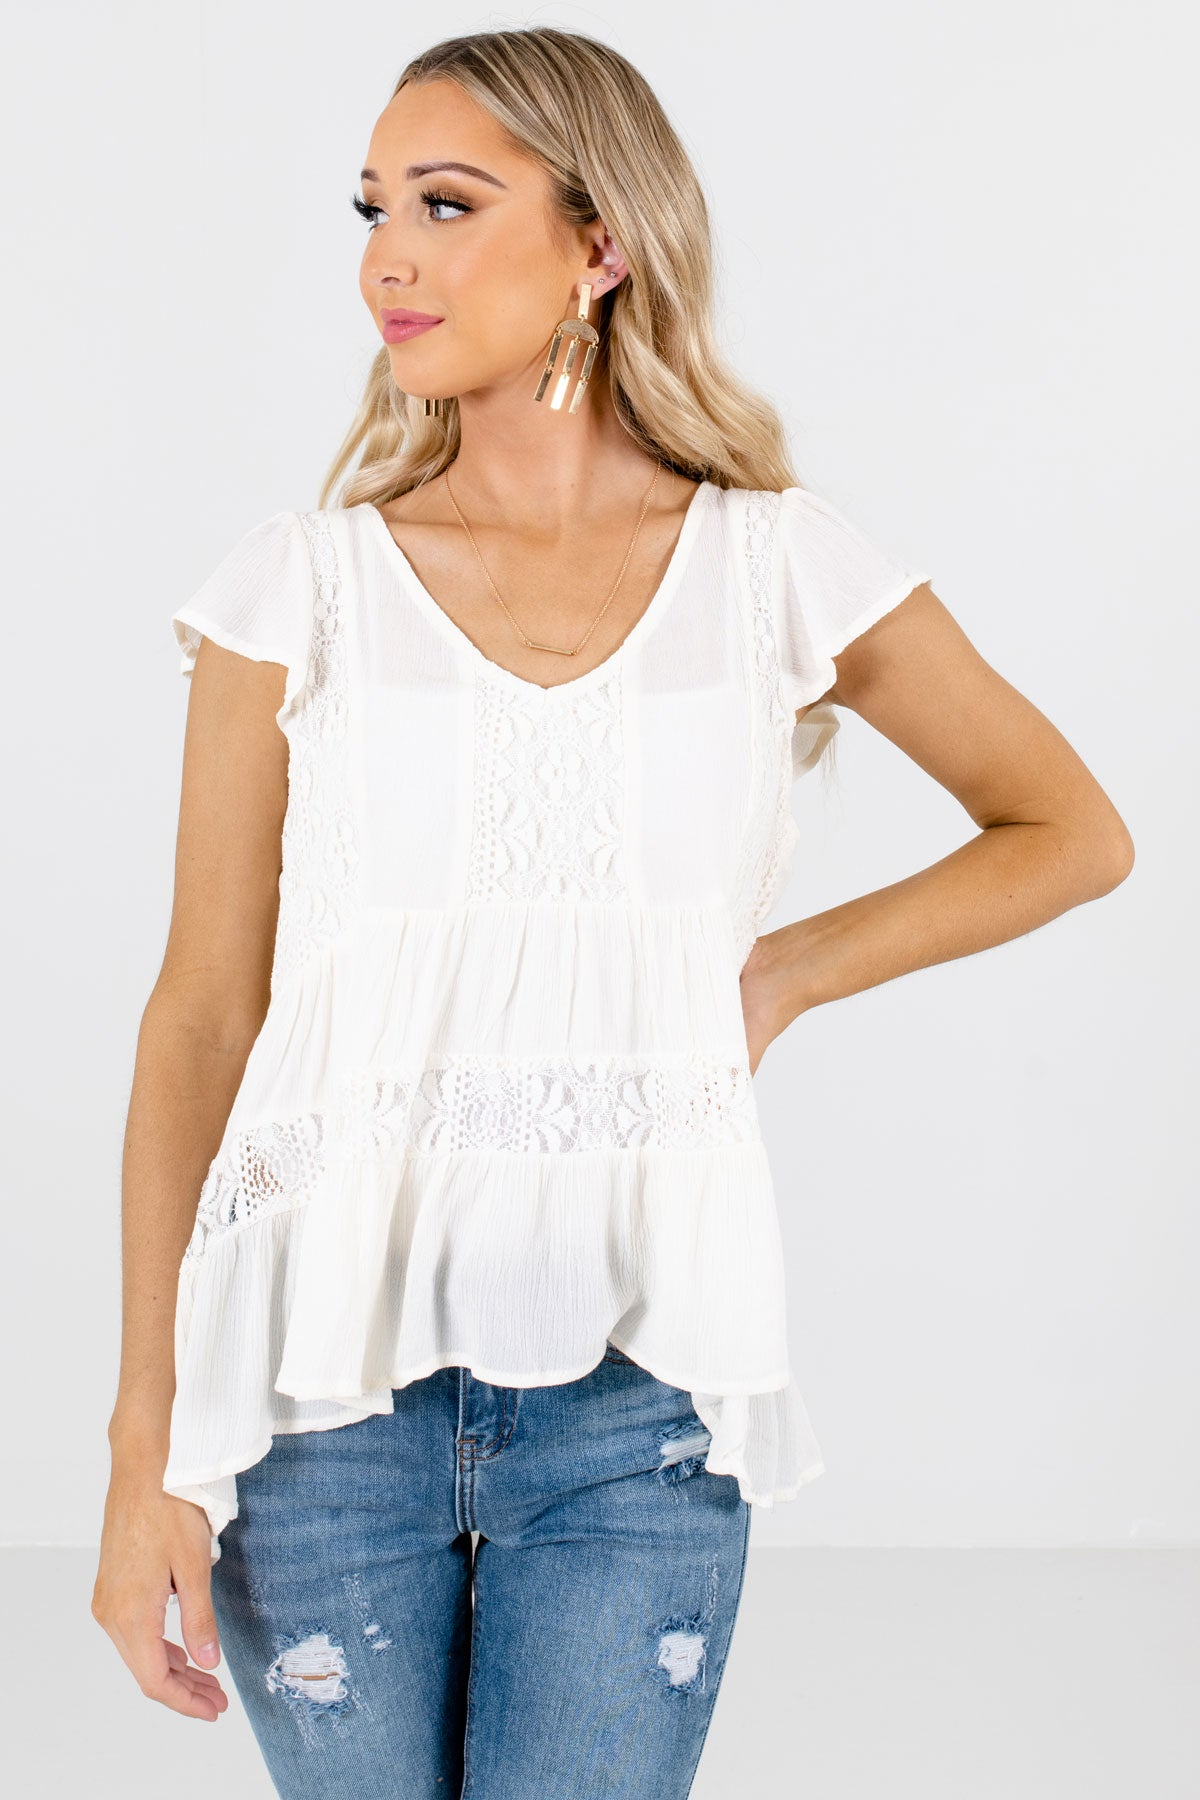 Cream White Semi-Sheer Lace Boutique Tops for Women